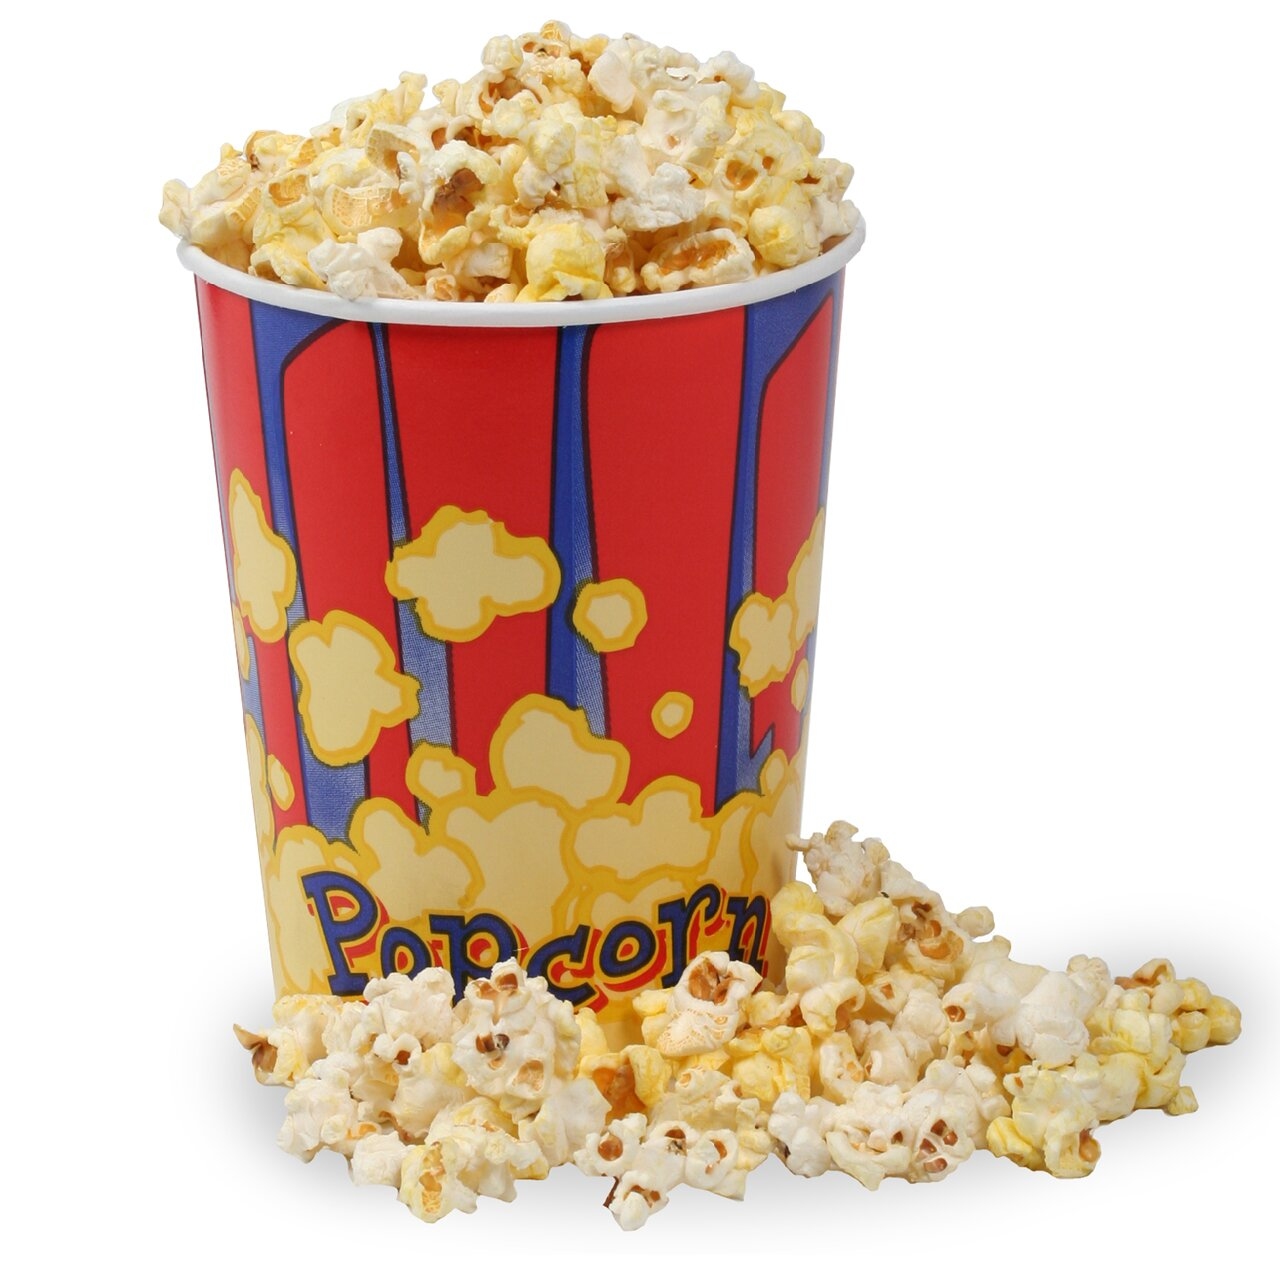 popcorn bucket theater northern oz movies buckets ounce things amazon 32oz kitchen pack quantity chinese take going appliances machines